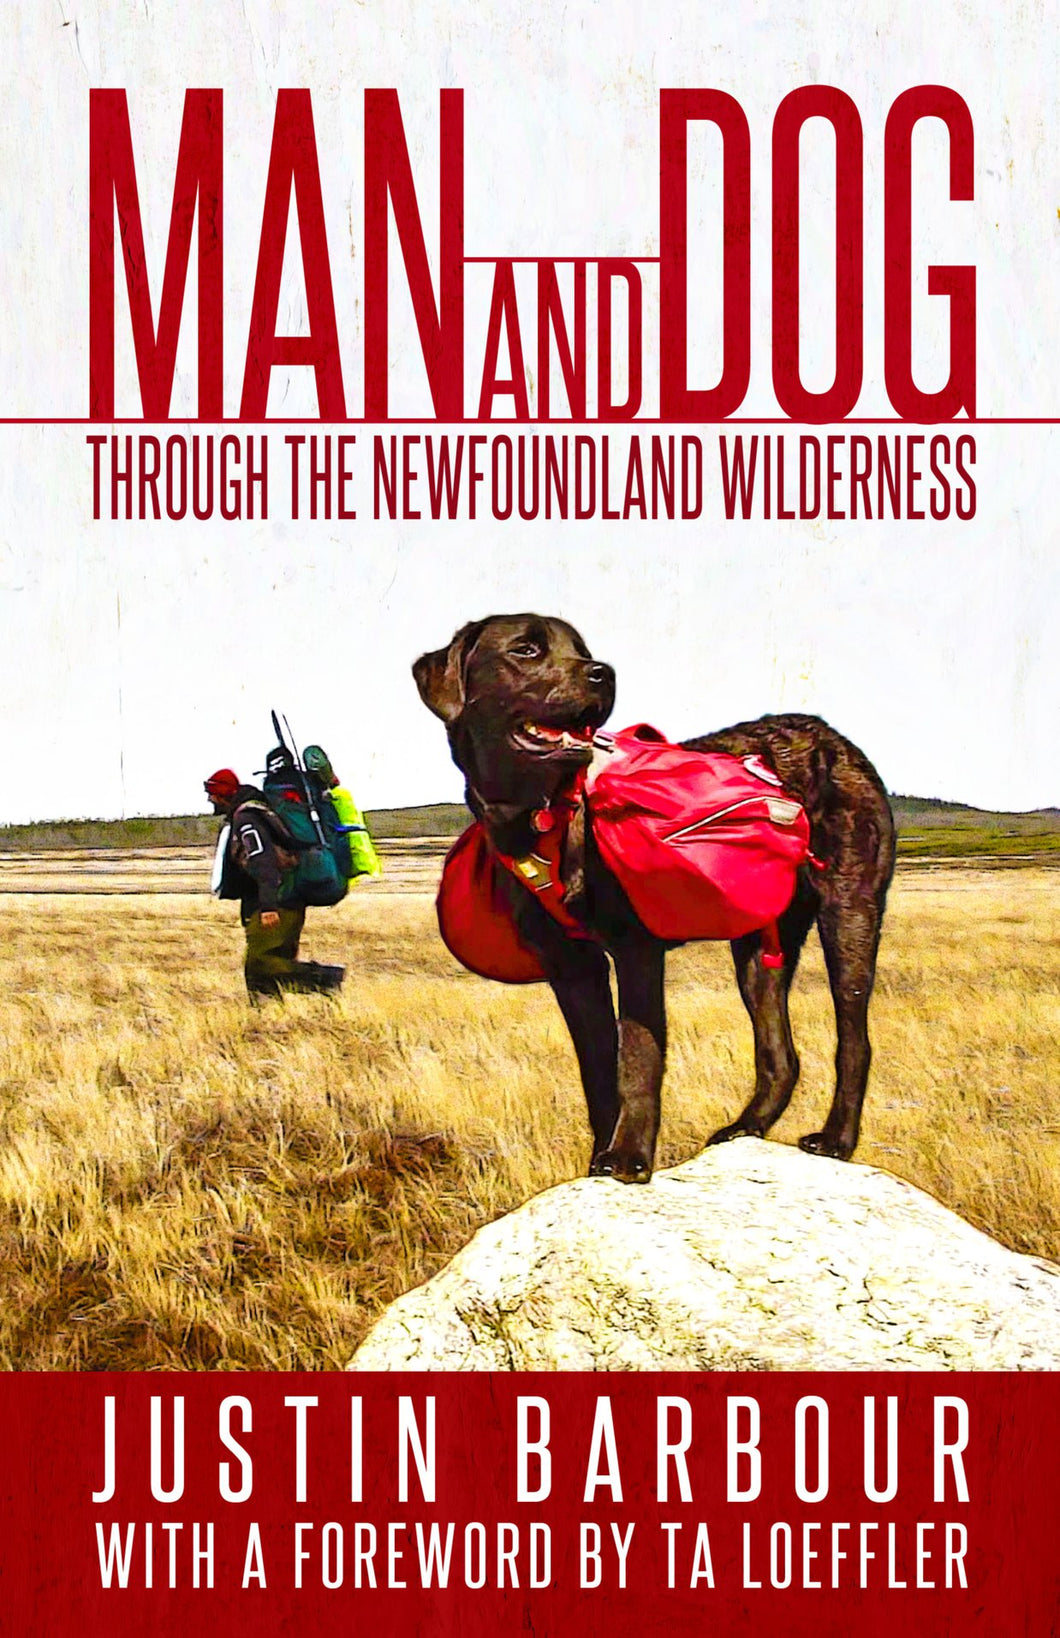 Man and Dog: Through the Newfoundland Wilderness